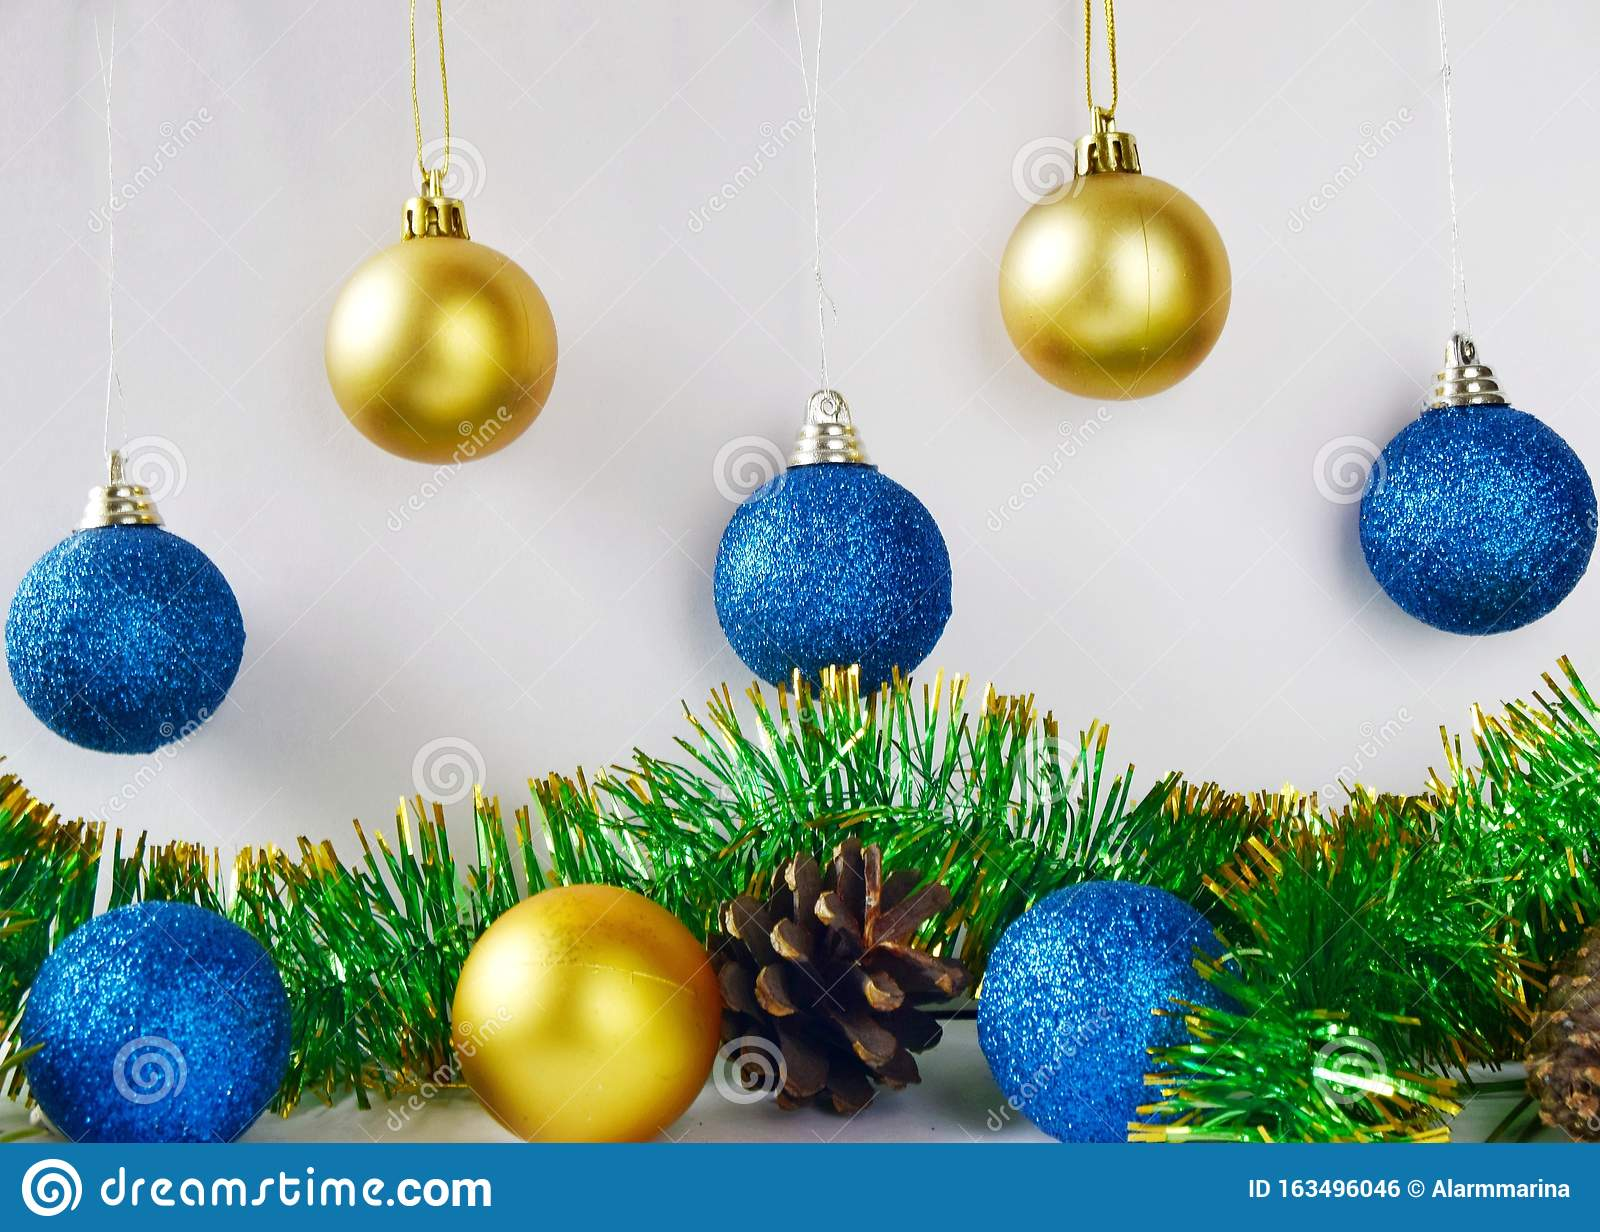 Christmas Tree Decorations Blue And Yellow Balls On White Background Close Up Stock Photo Image Of Christmas Gift 163496046